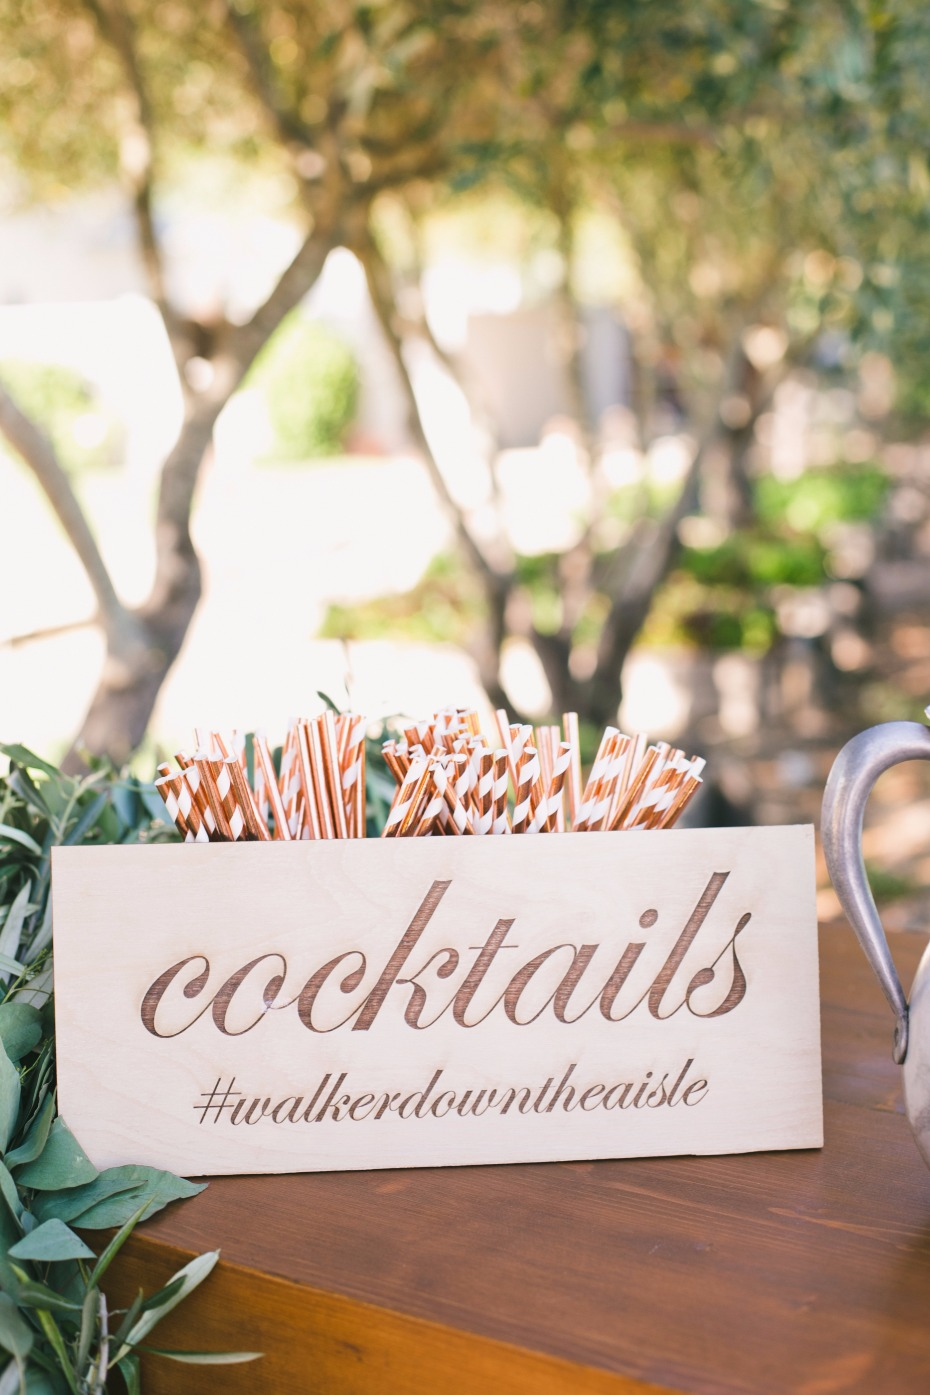 Wood cocktails sign